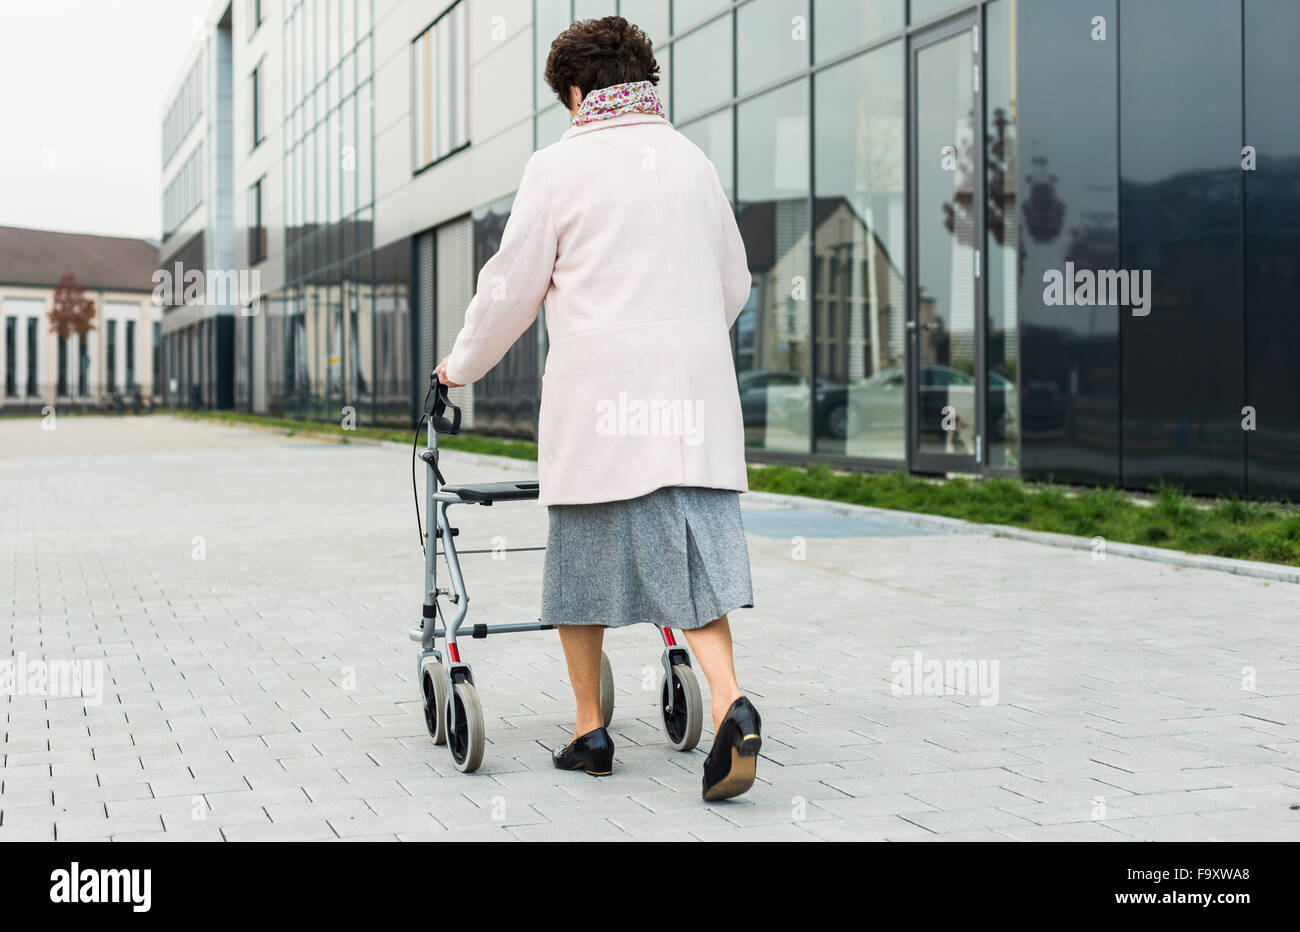 Old Person Walking Frame Stock Photos & Old Person Walking Frame ...